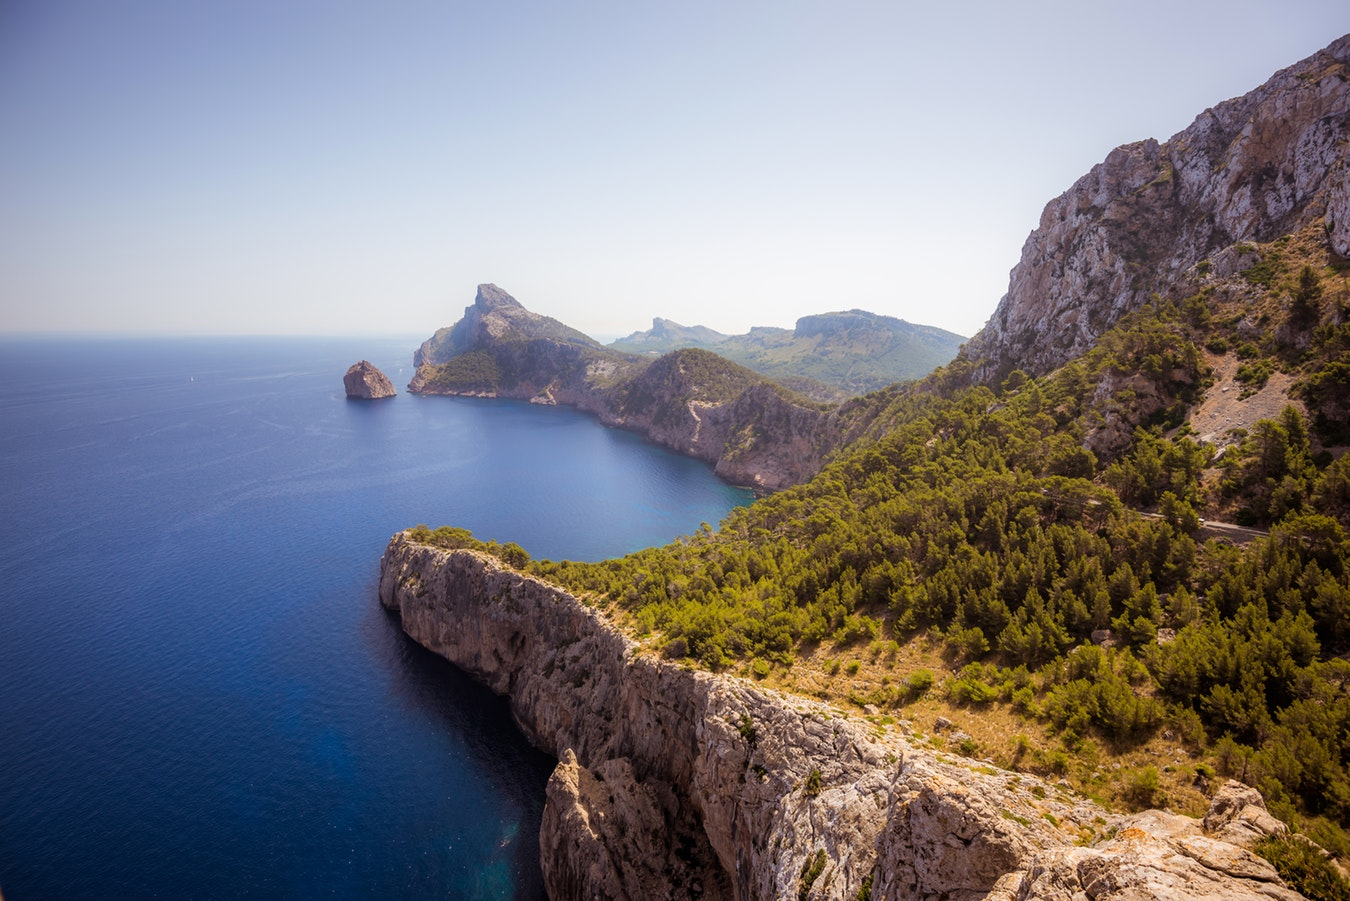 Cycle tour in Mallorca